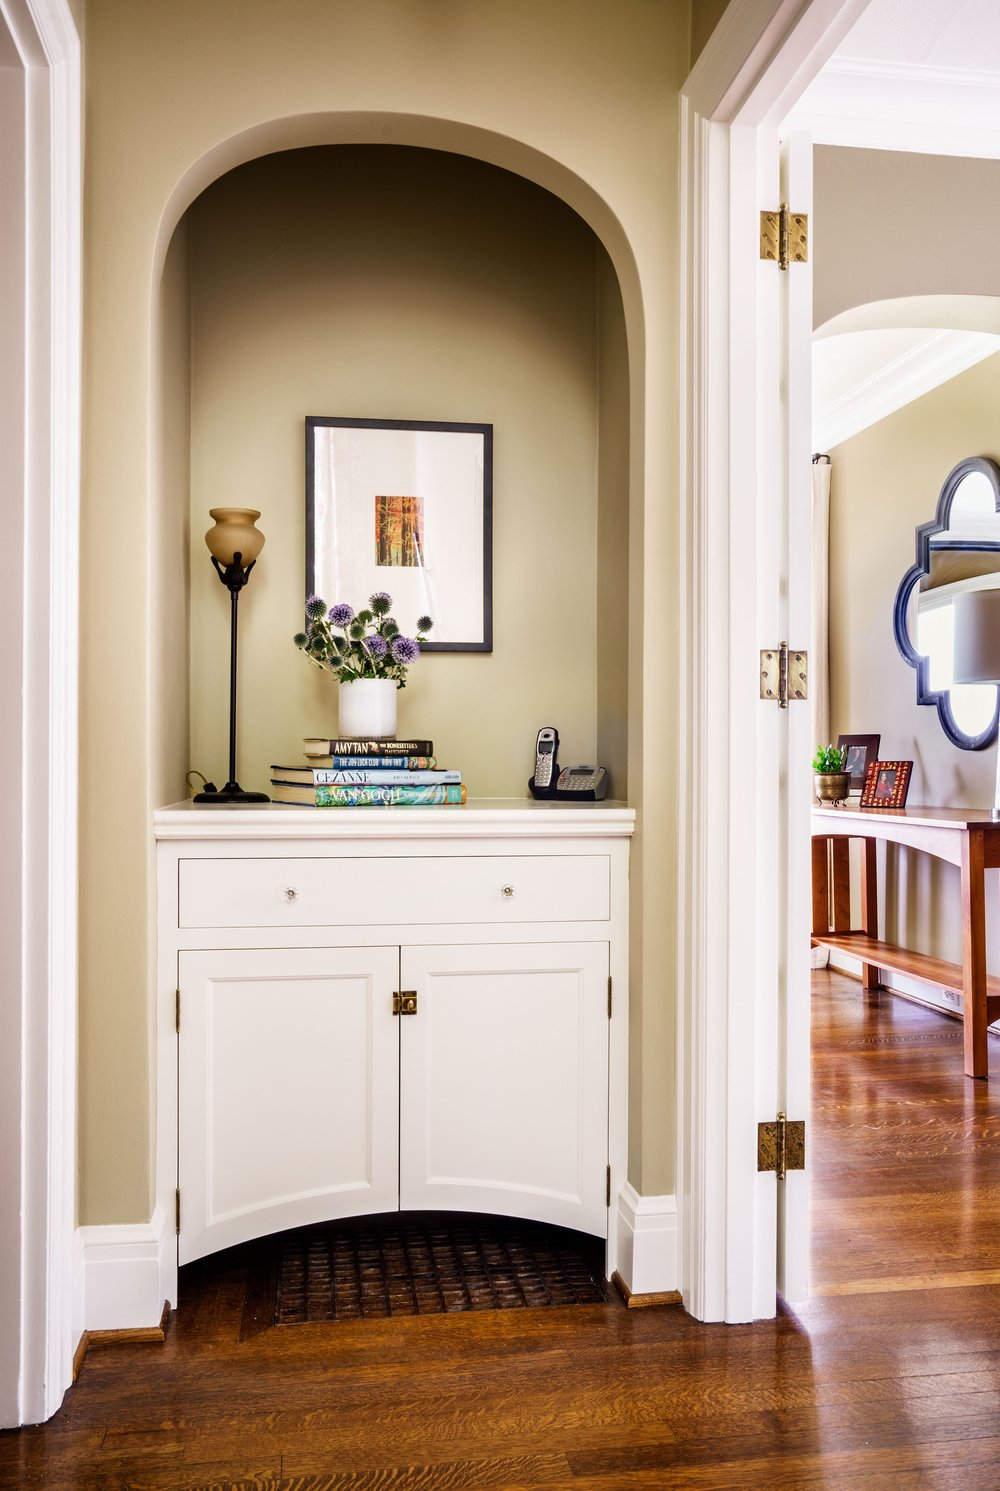 New nook built-in with arched bottom.